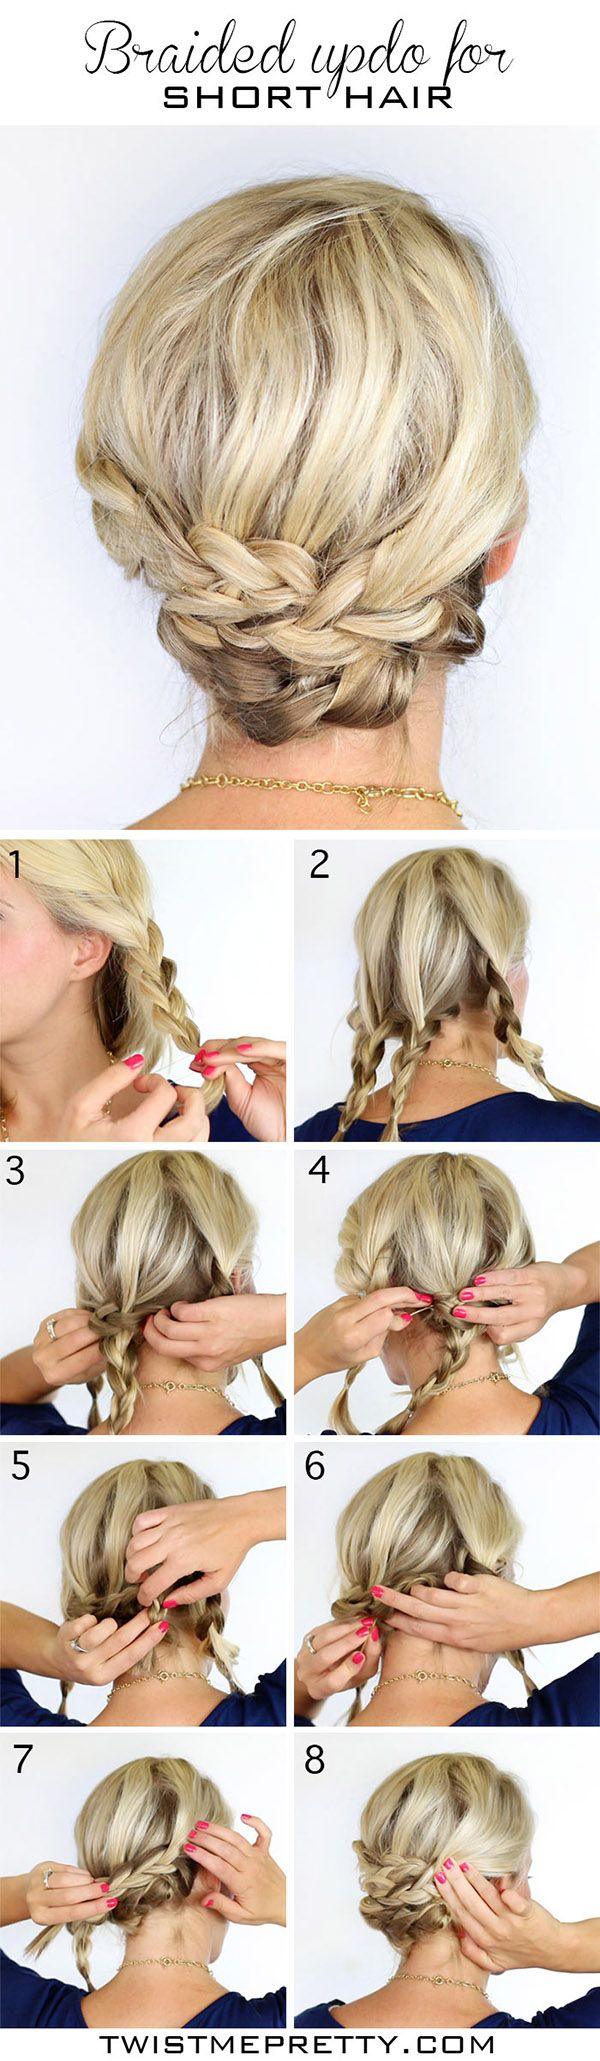 diy wedding hairstyles with tutorials to try on your own updo